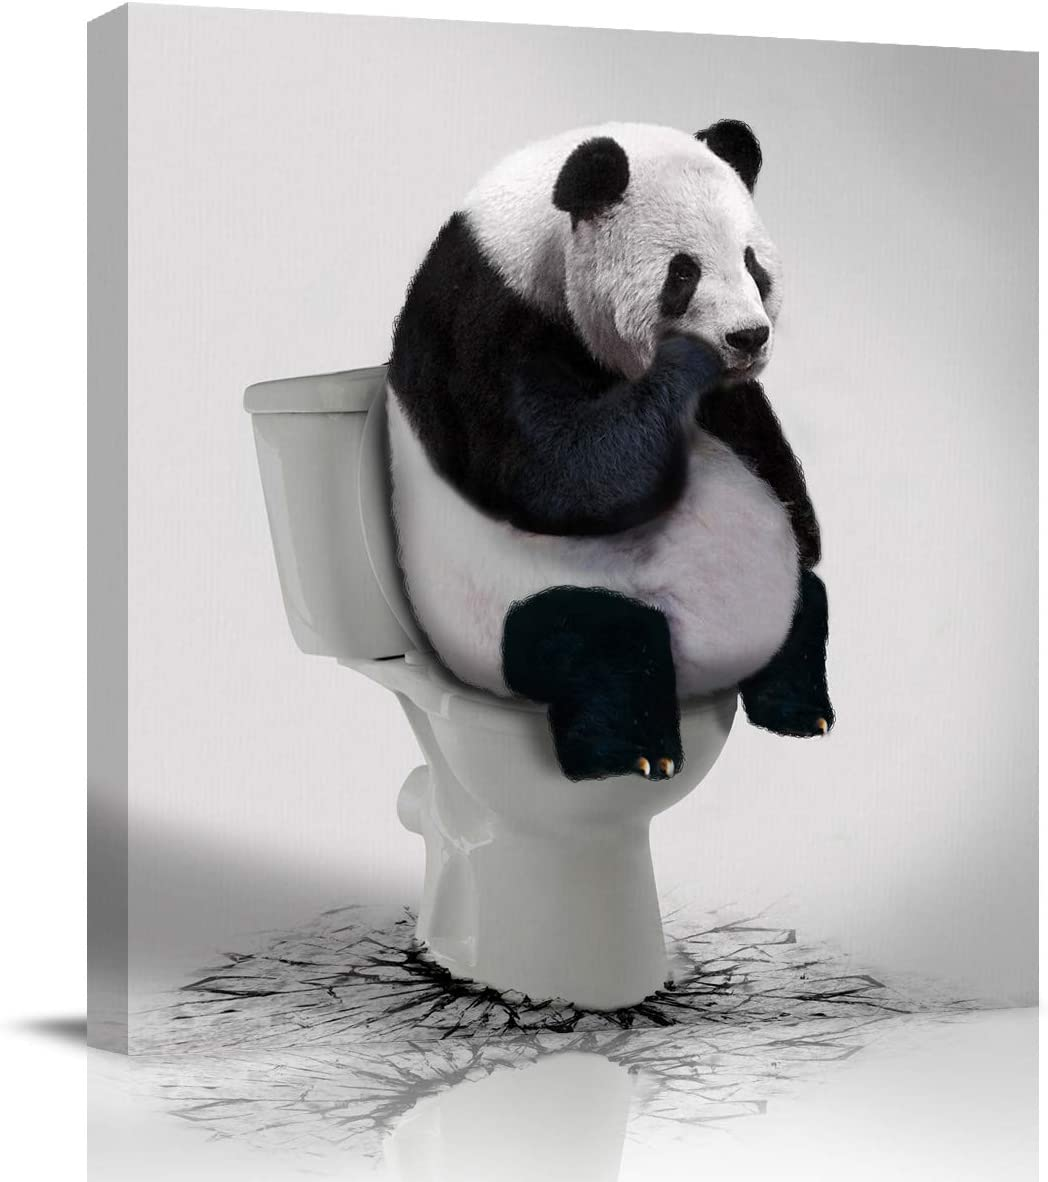 LooPoP Bathroom Decor Canvas Wall Art Framed Wall Decoration Funny Animal Gallery Wall Decor Print Panda Thinker on Toilet Picture Artwork for Walls Ready to Hang for Kitchen Bedroom Decor 12x12 Inch